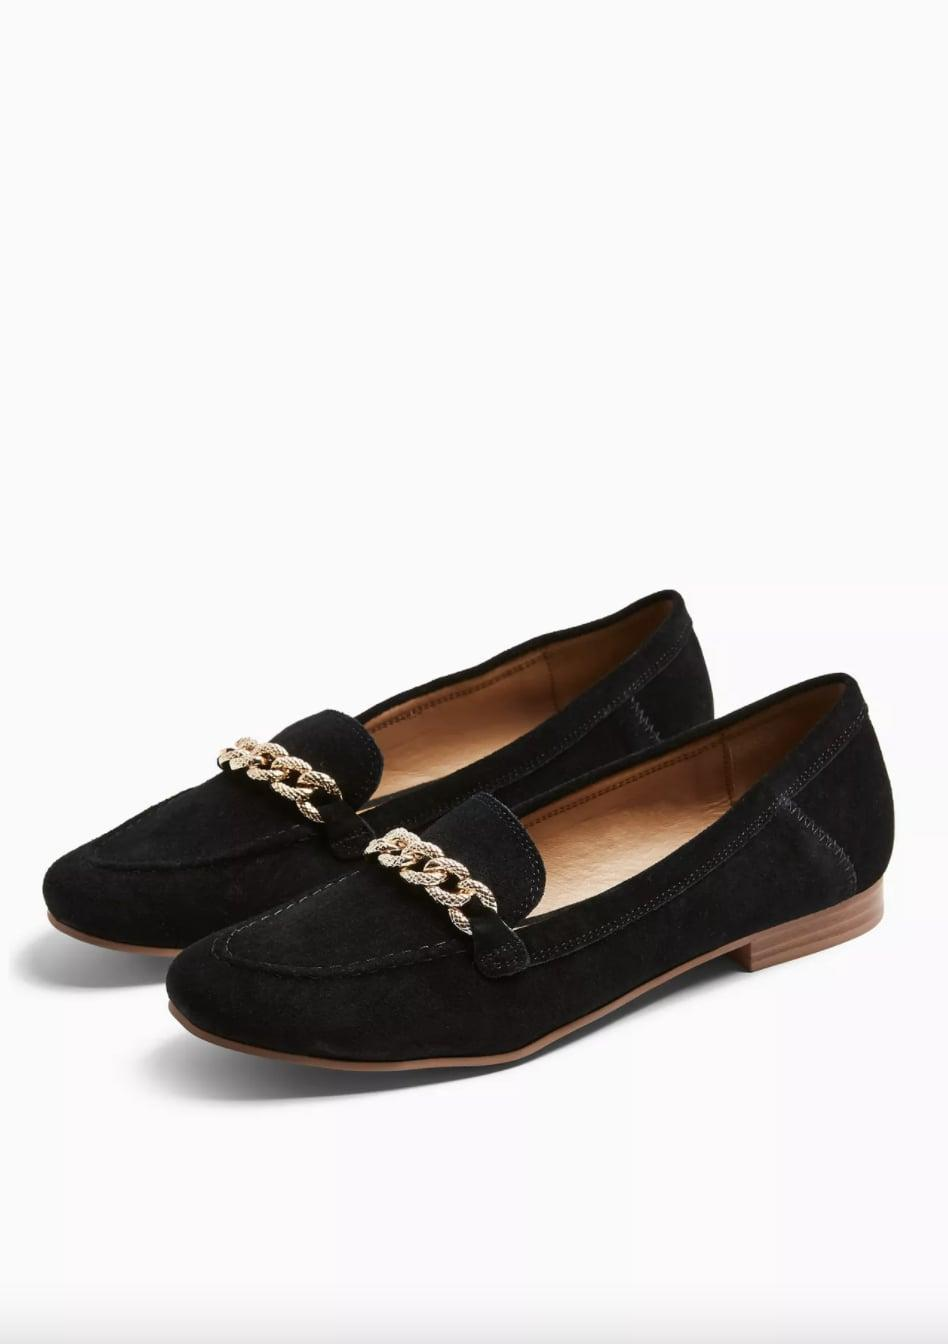 <p>These <span>Topshop LEO Black Leather Chain Trim Loafers</span> ($39, originally $55) will take you from the office to a casual happy hour.</p>